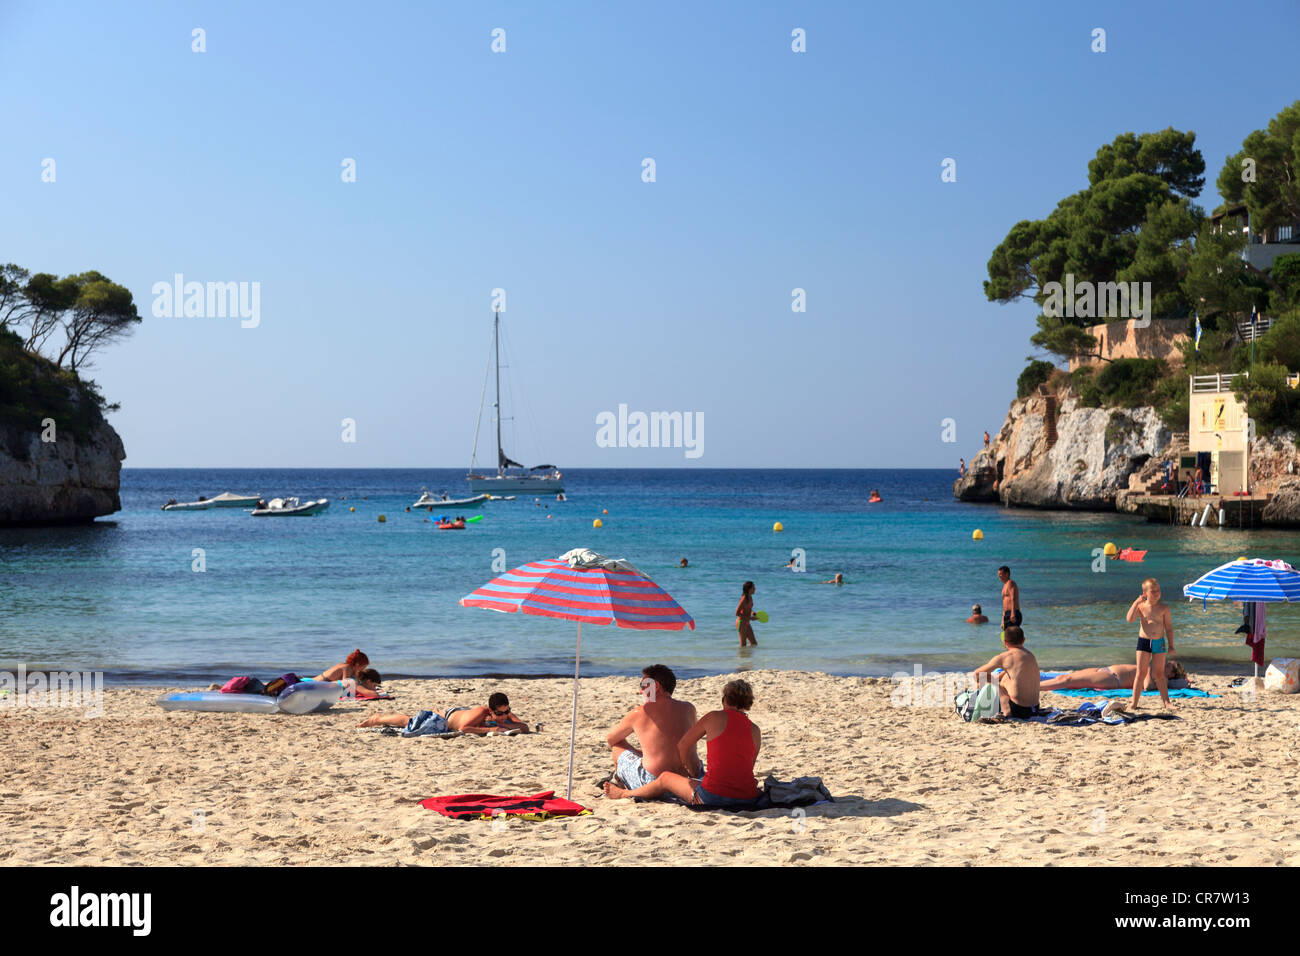 spain balearic islands mallorca cala santanyi beach stock photo royalty free image 48731119. Black Bedroom Furniture Sets. Home Design Ideas